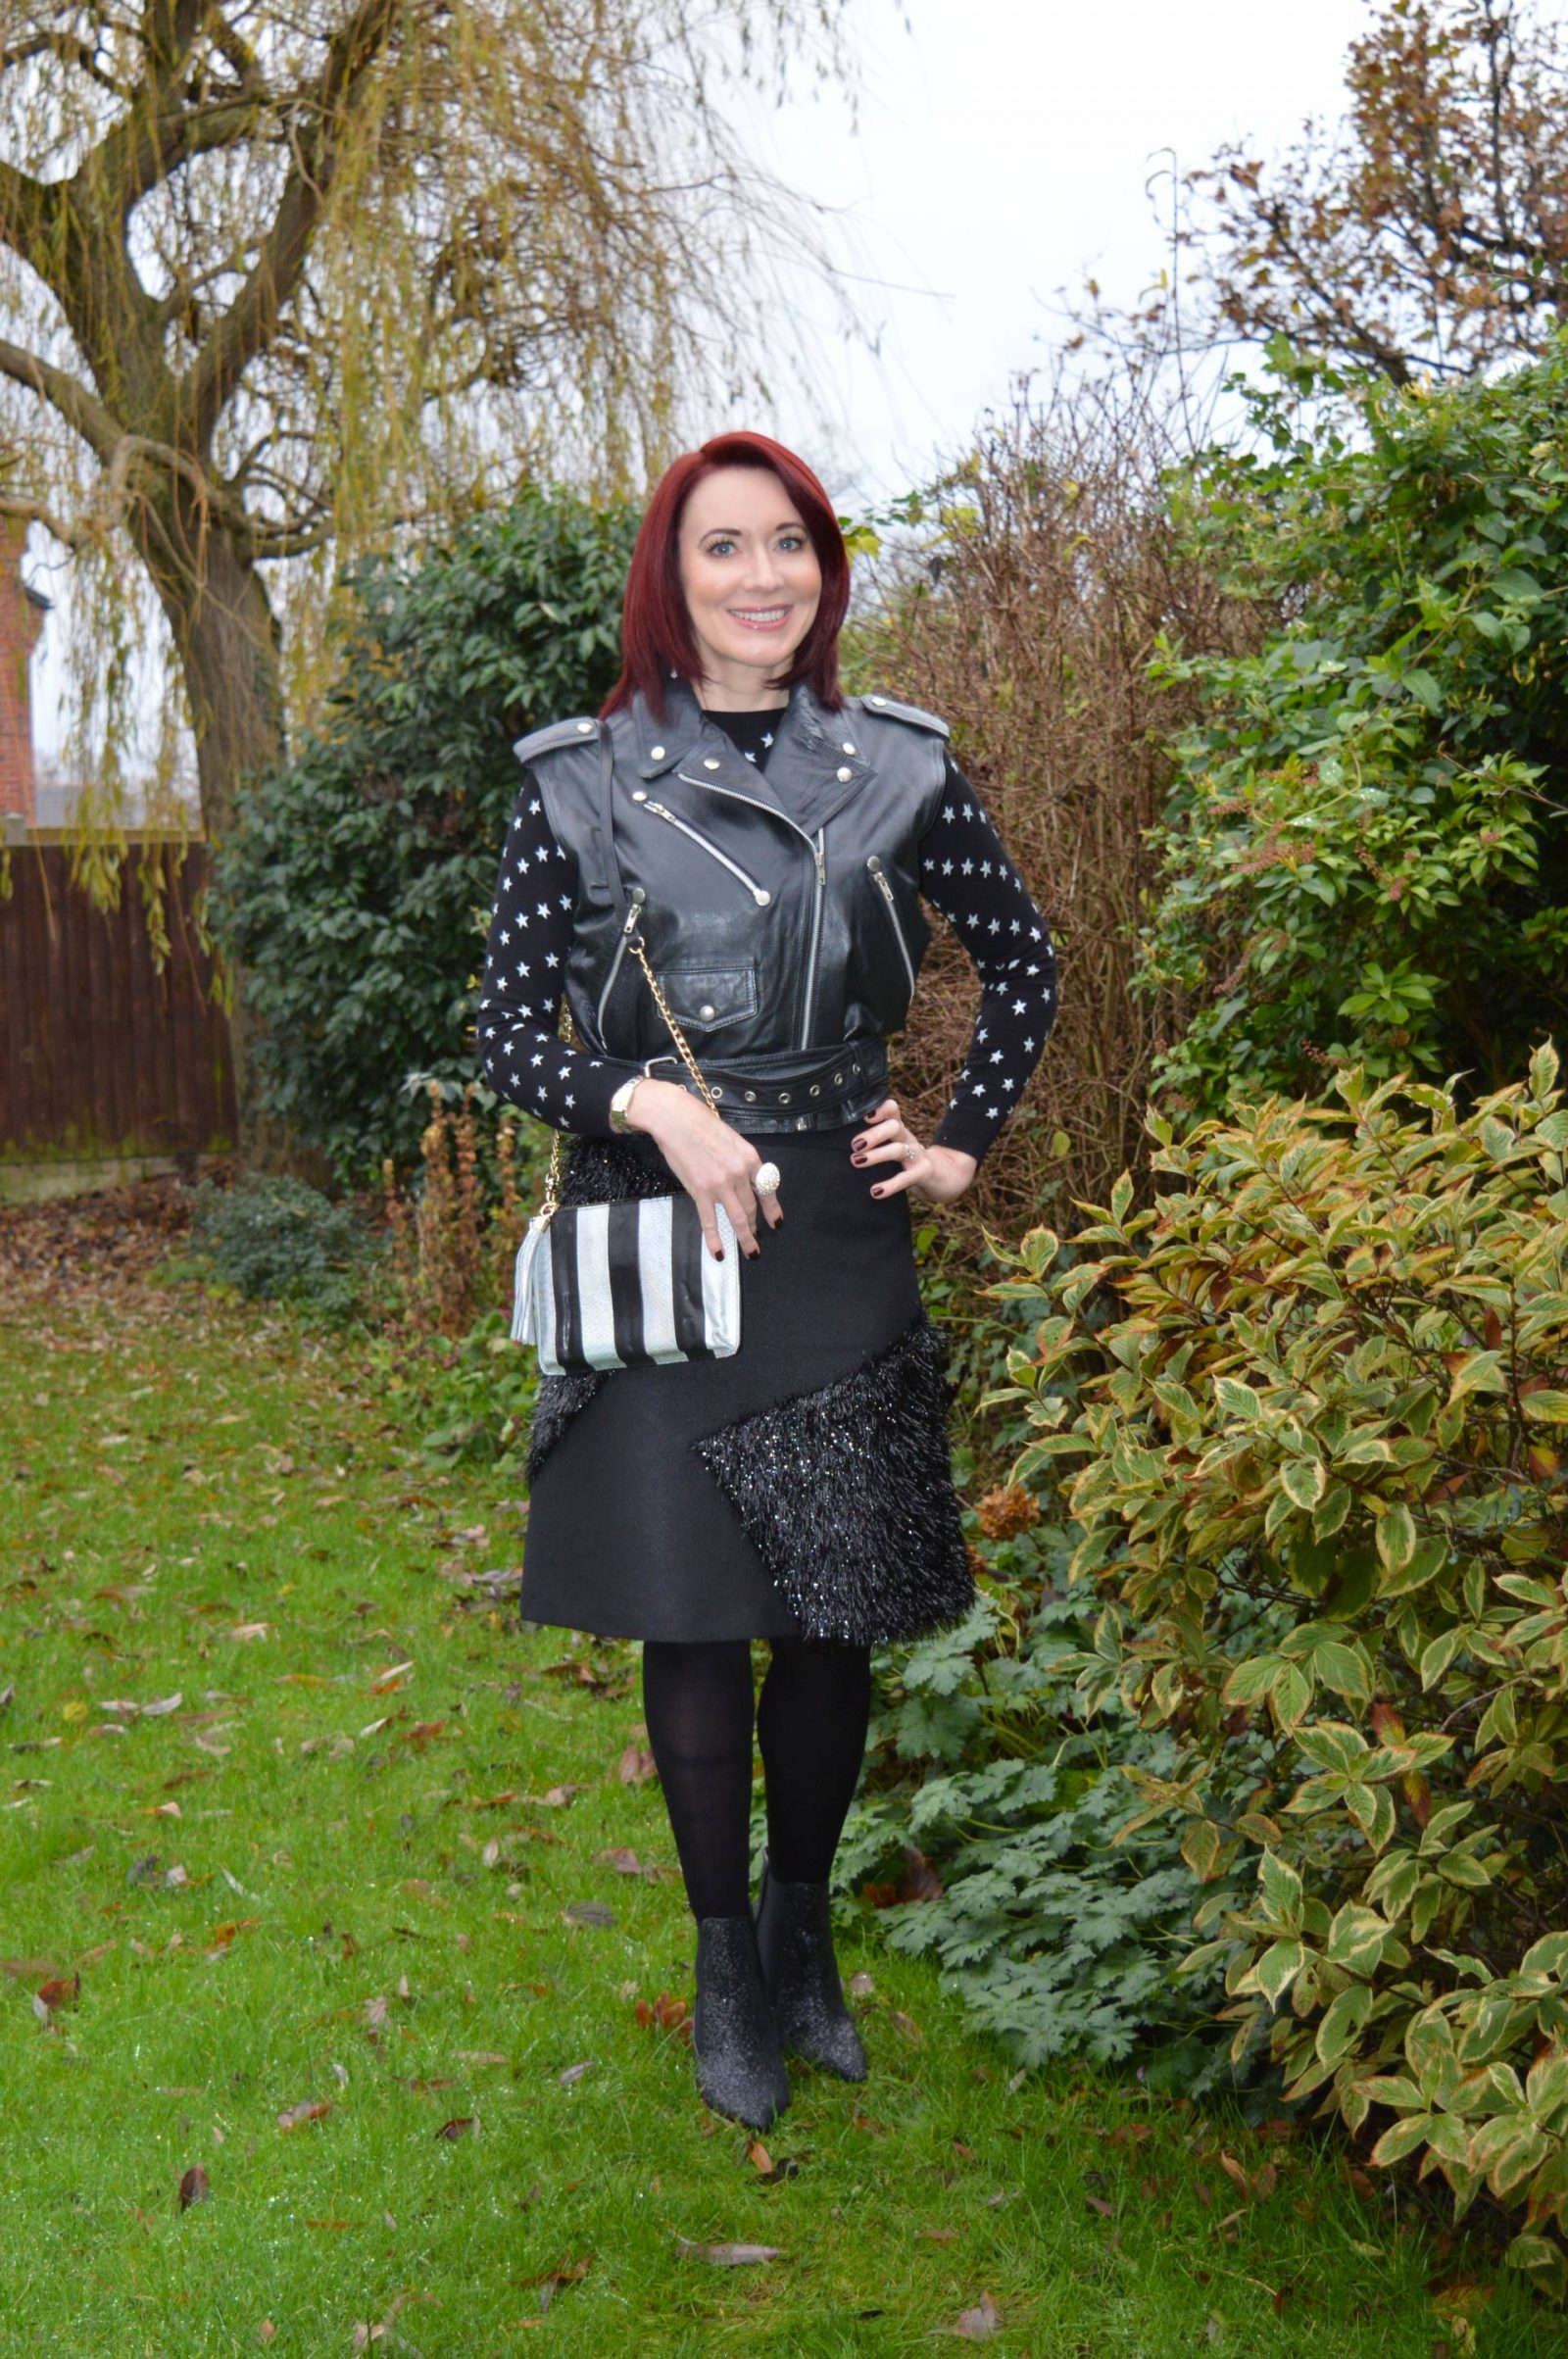 Black Tinsel Skirt, Glitter Boots and Star Jumper + Link Up, Topshop tinsel skirt, Marks and Spencer star jumper